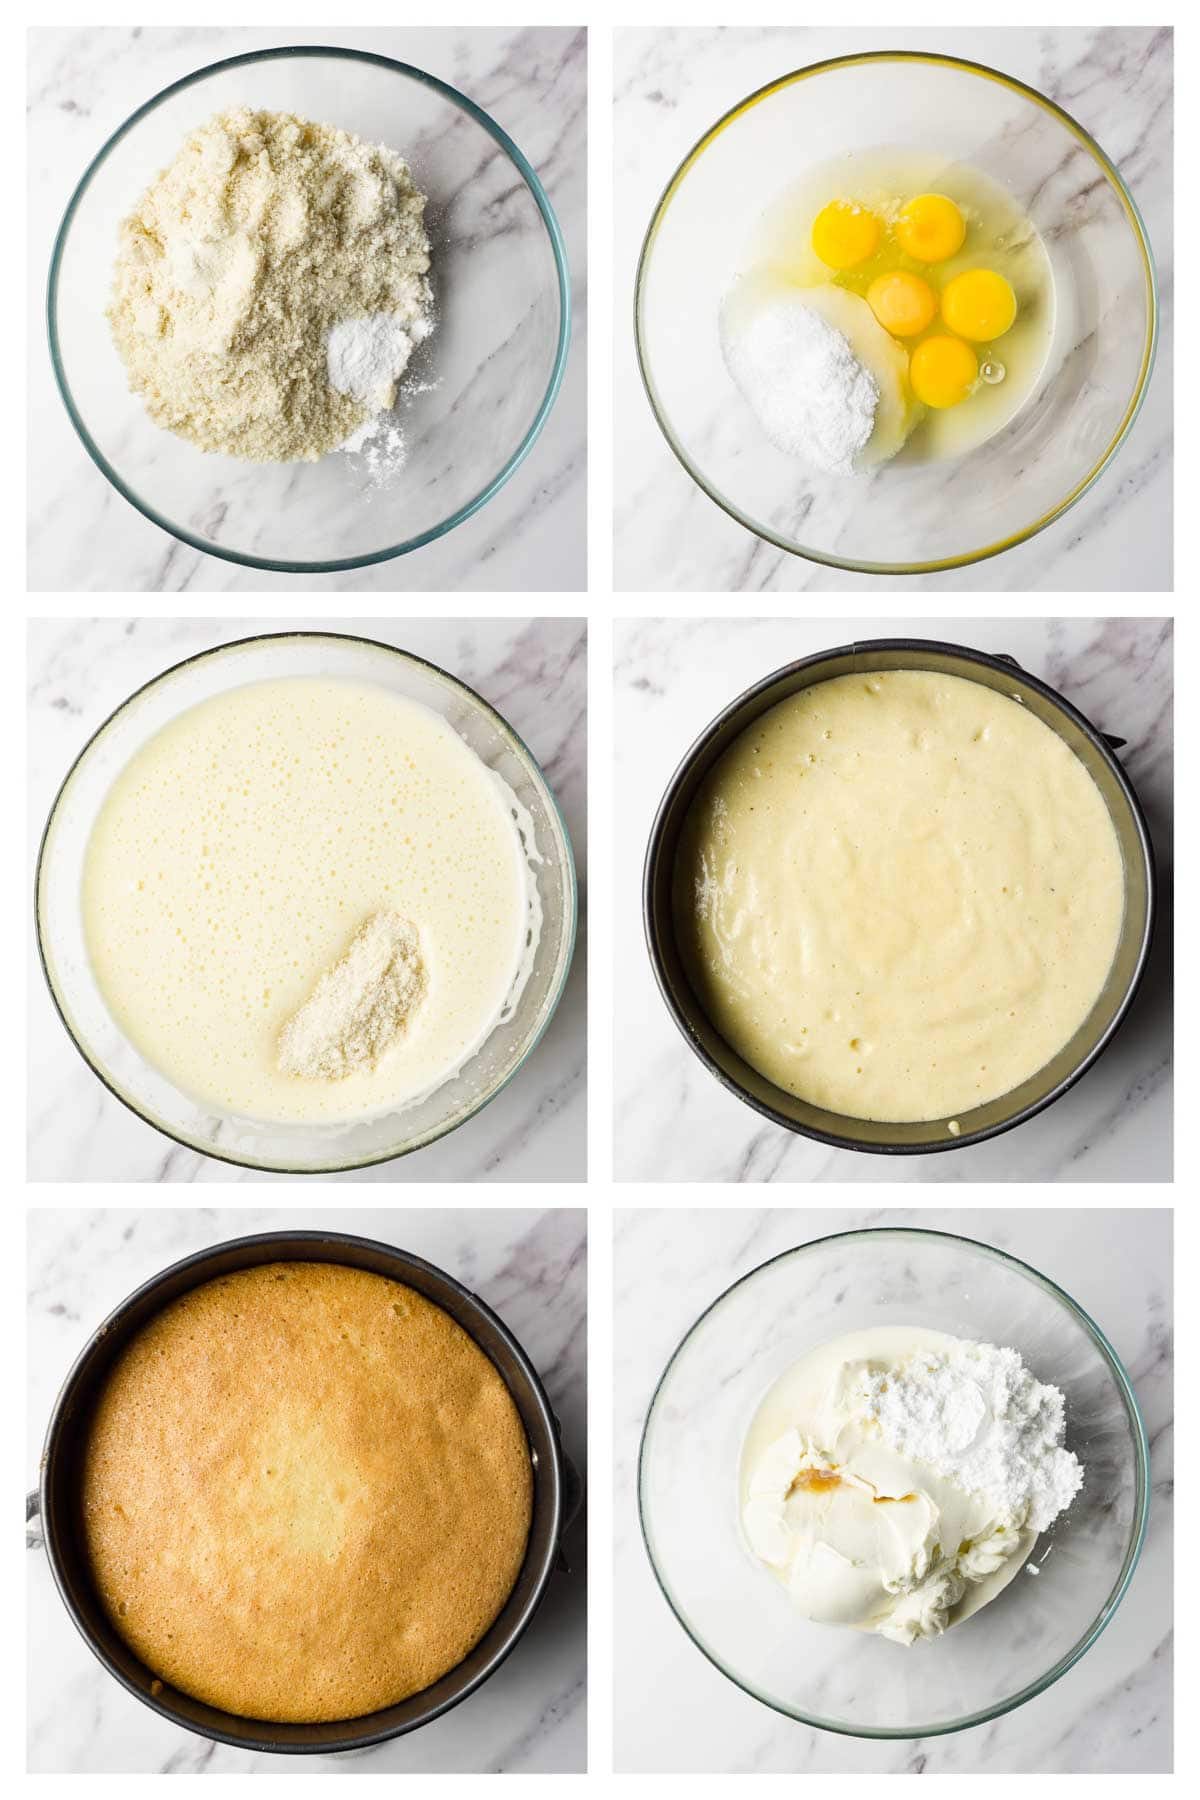 6 steps collage image showing how to make keto layer cake.